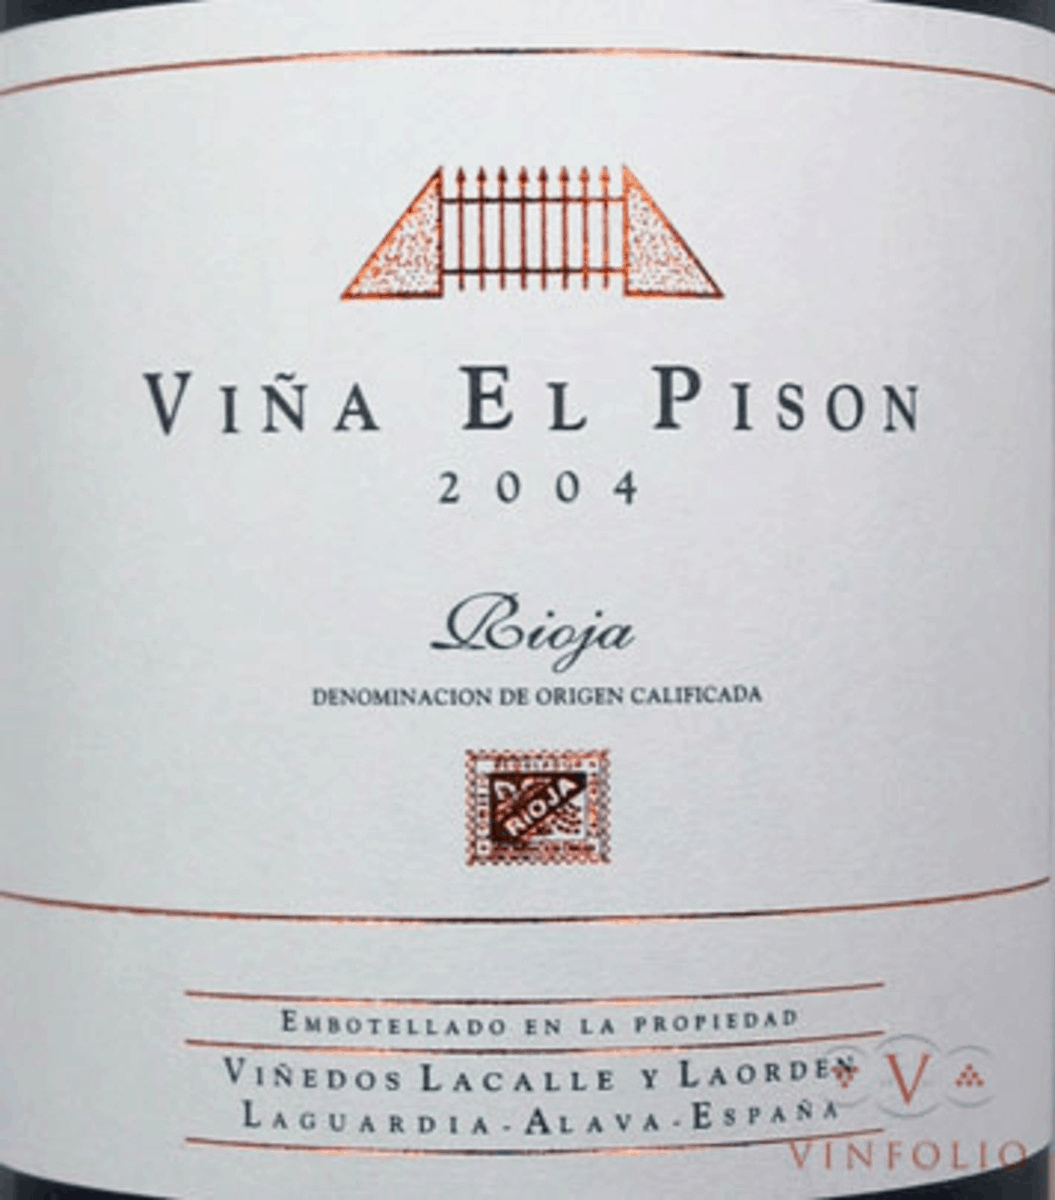 One of the top five wines from Spain is the 2004 Artadi Viña El Pison Reserva.